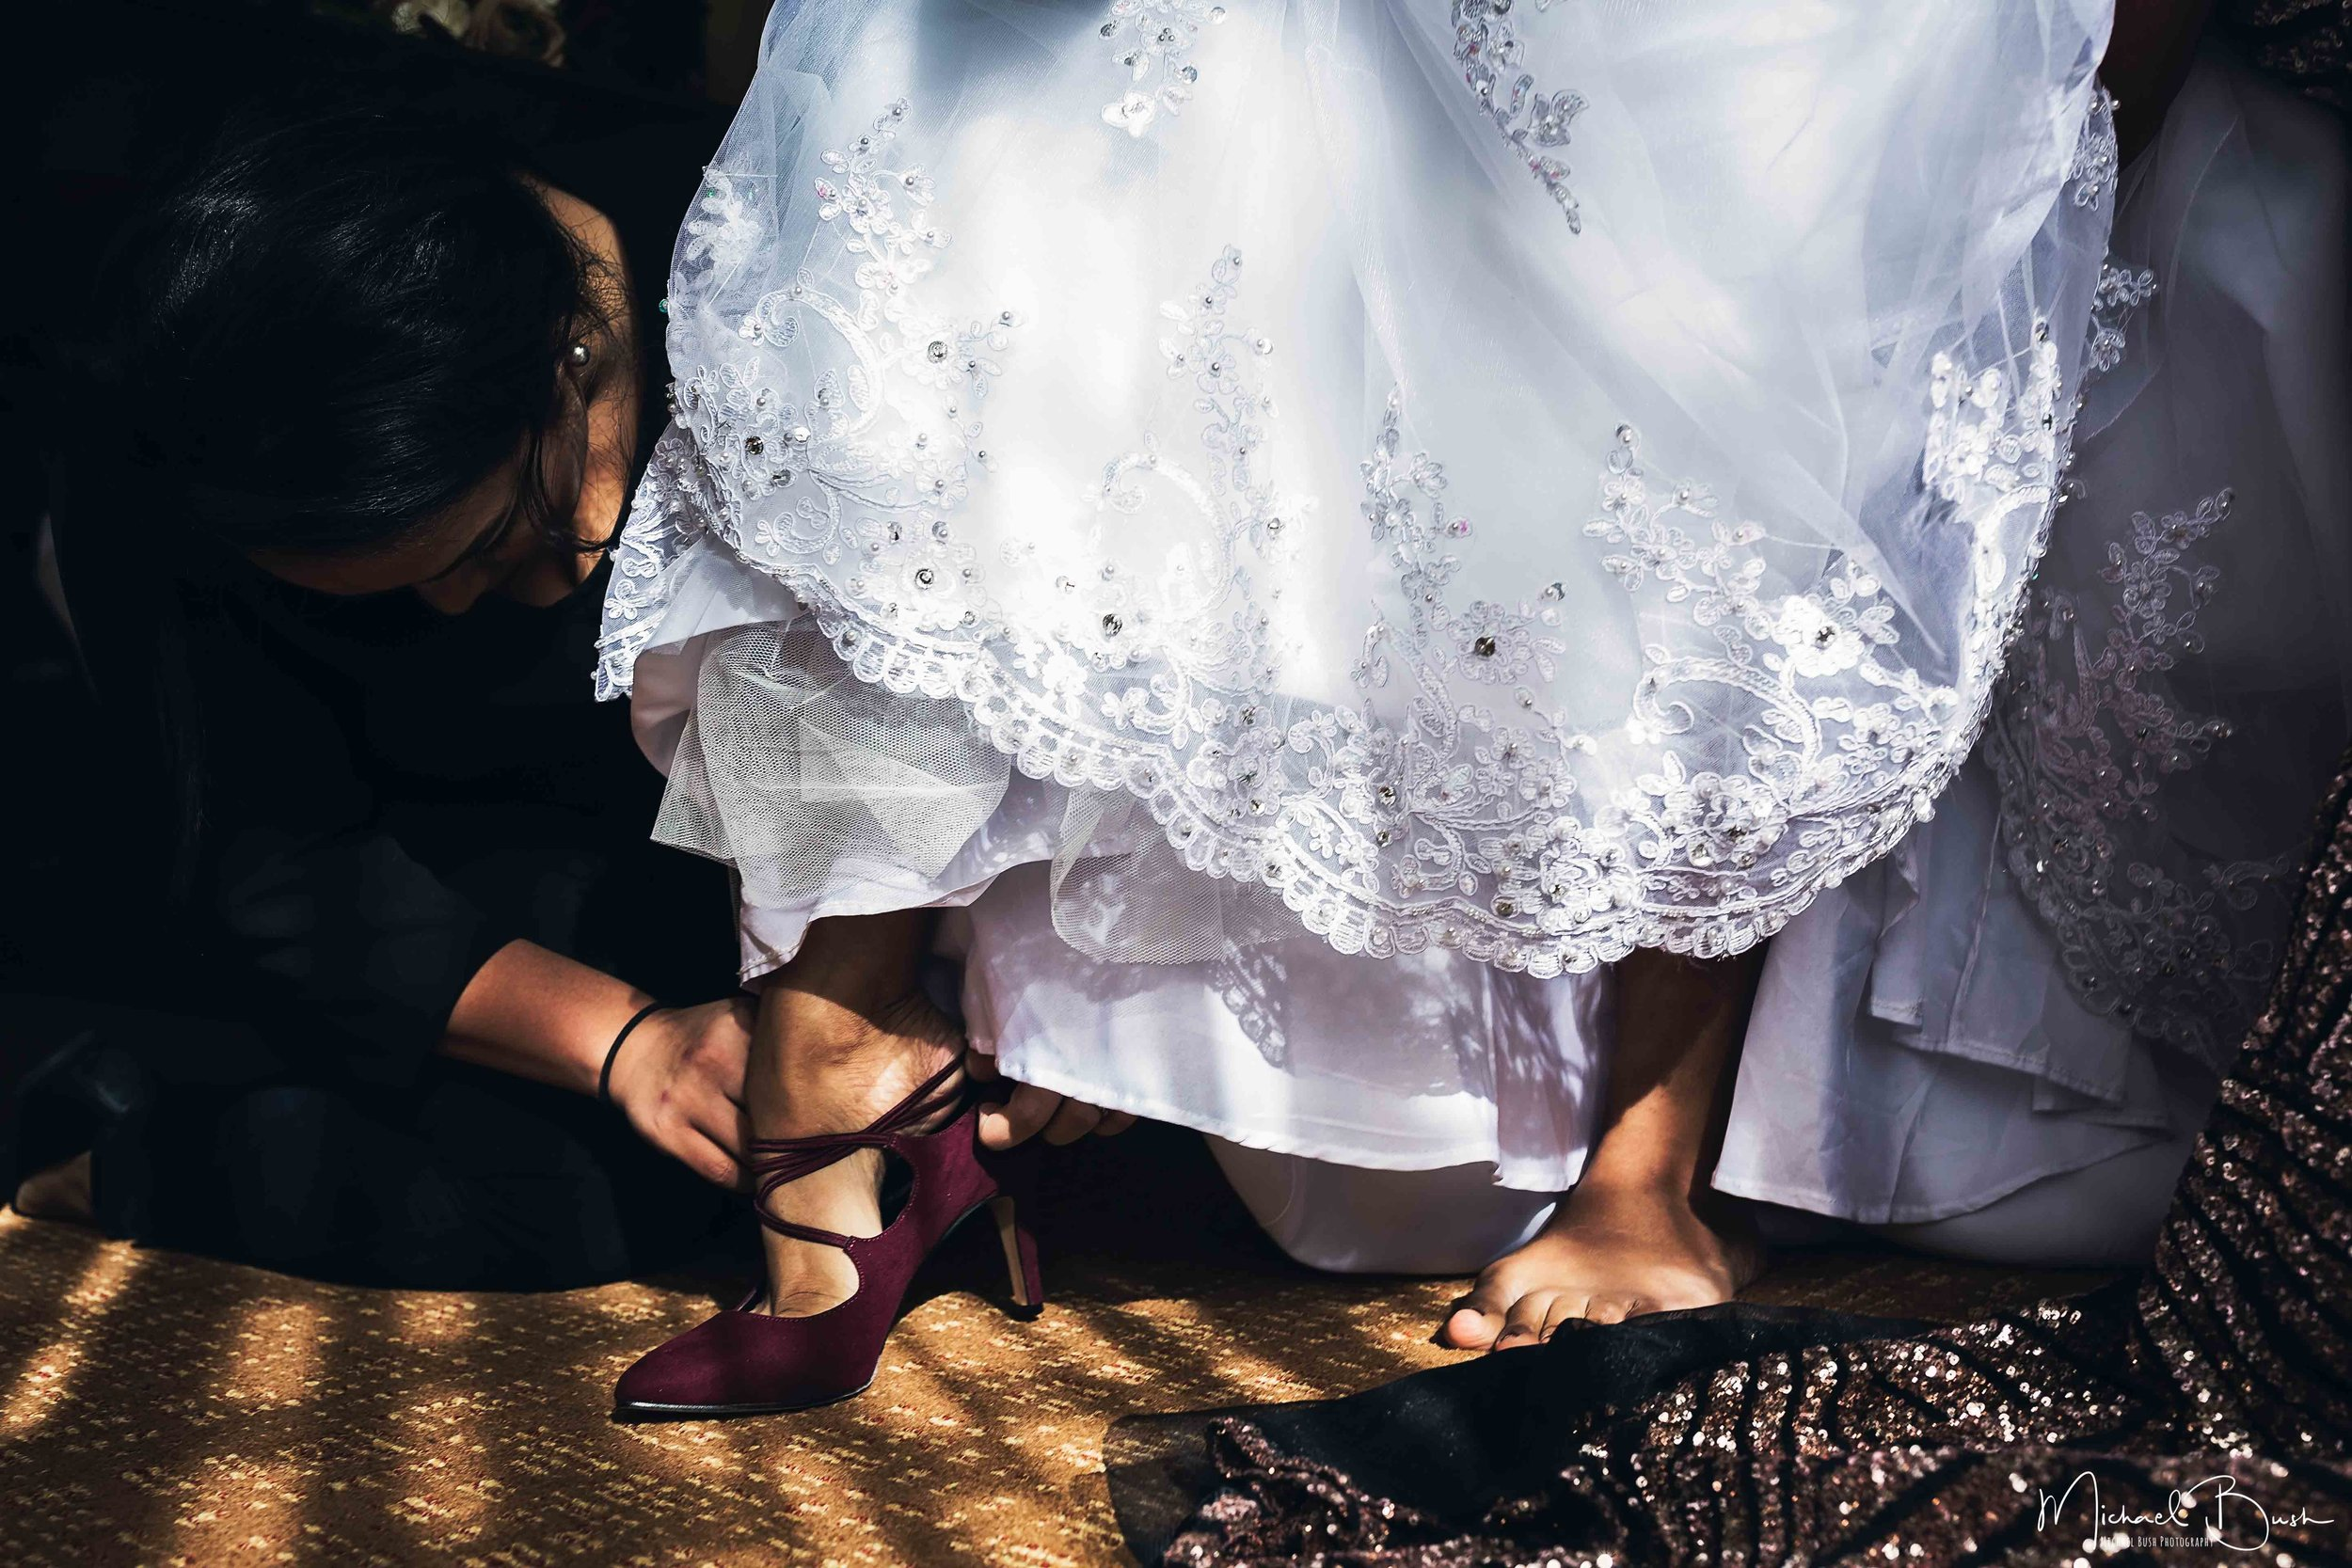 Wedding-Details-Bride-Fort Worth-colors-Getting Ready-MUA-brides-weddingshoes-shows-slippers.jpg